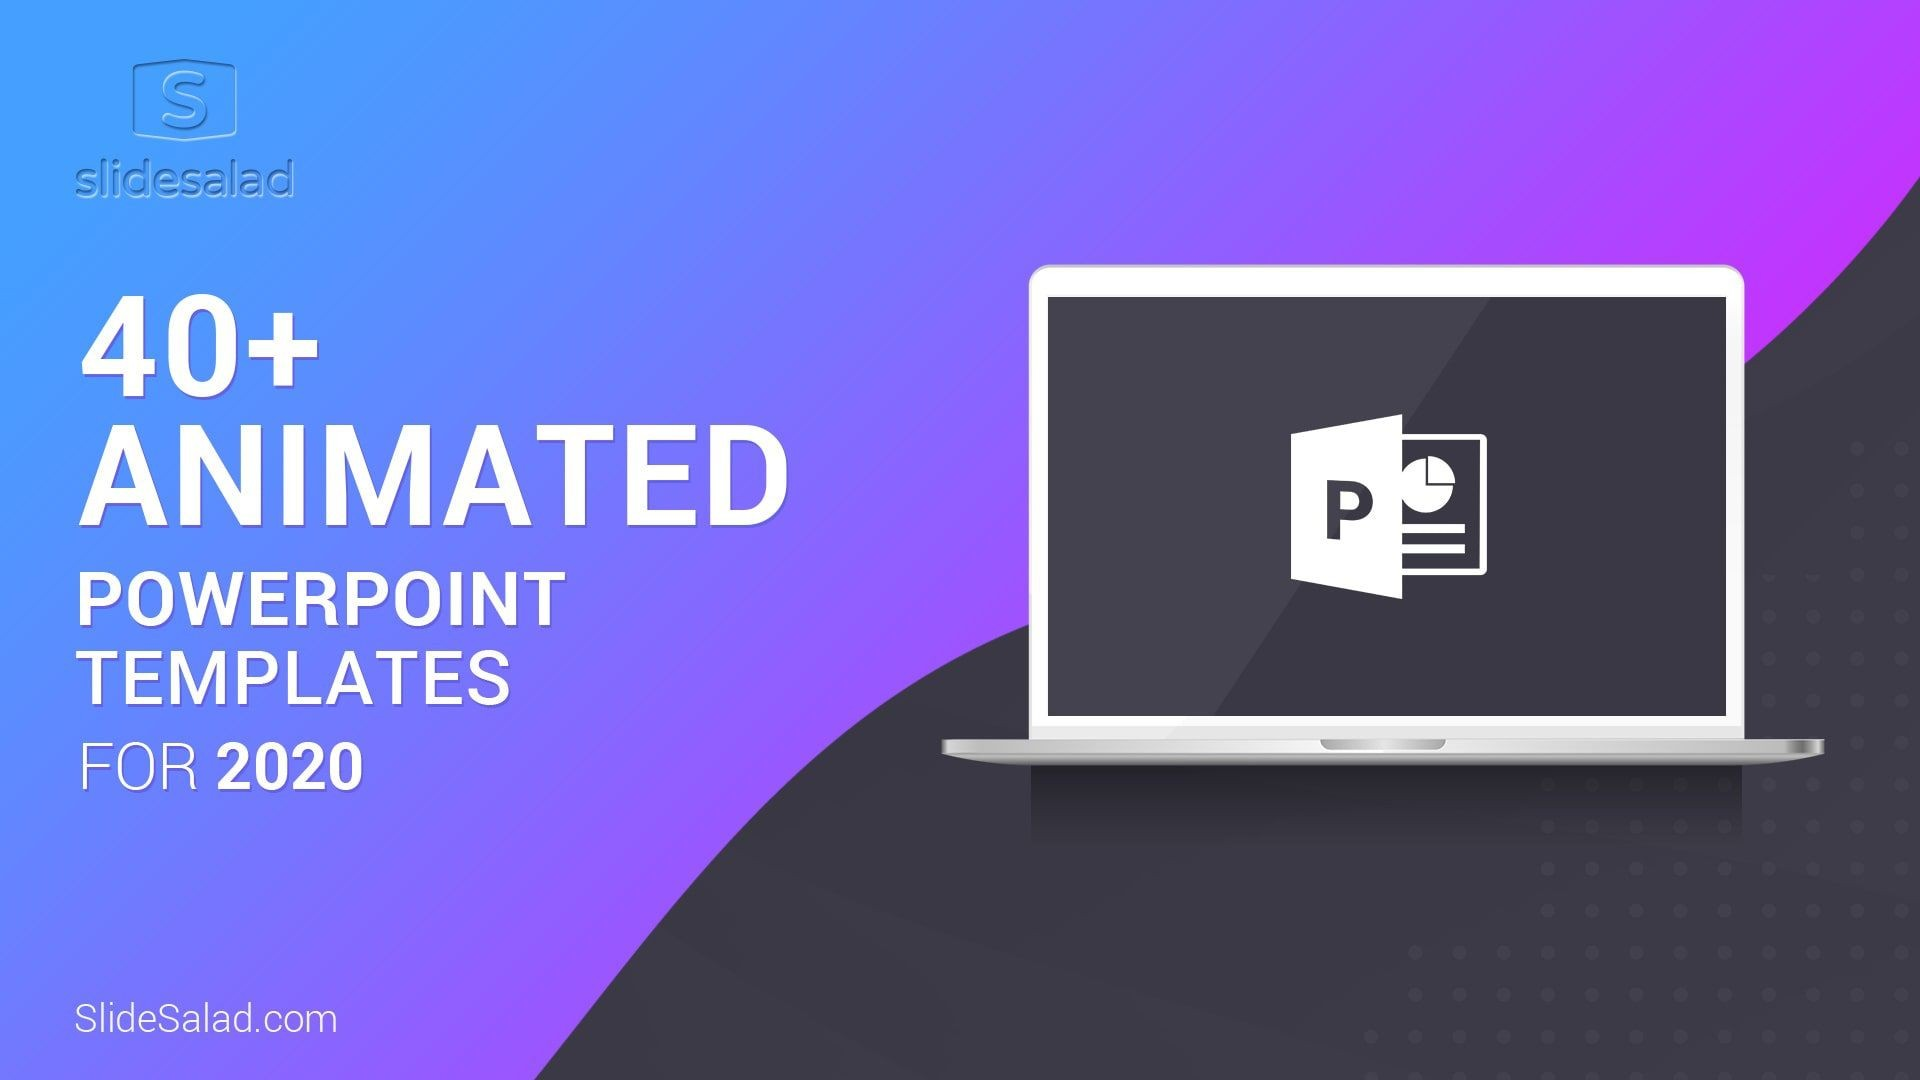 007 Unique 3d Animated Powerpoint Template Free Download 2013 Concept 1920